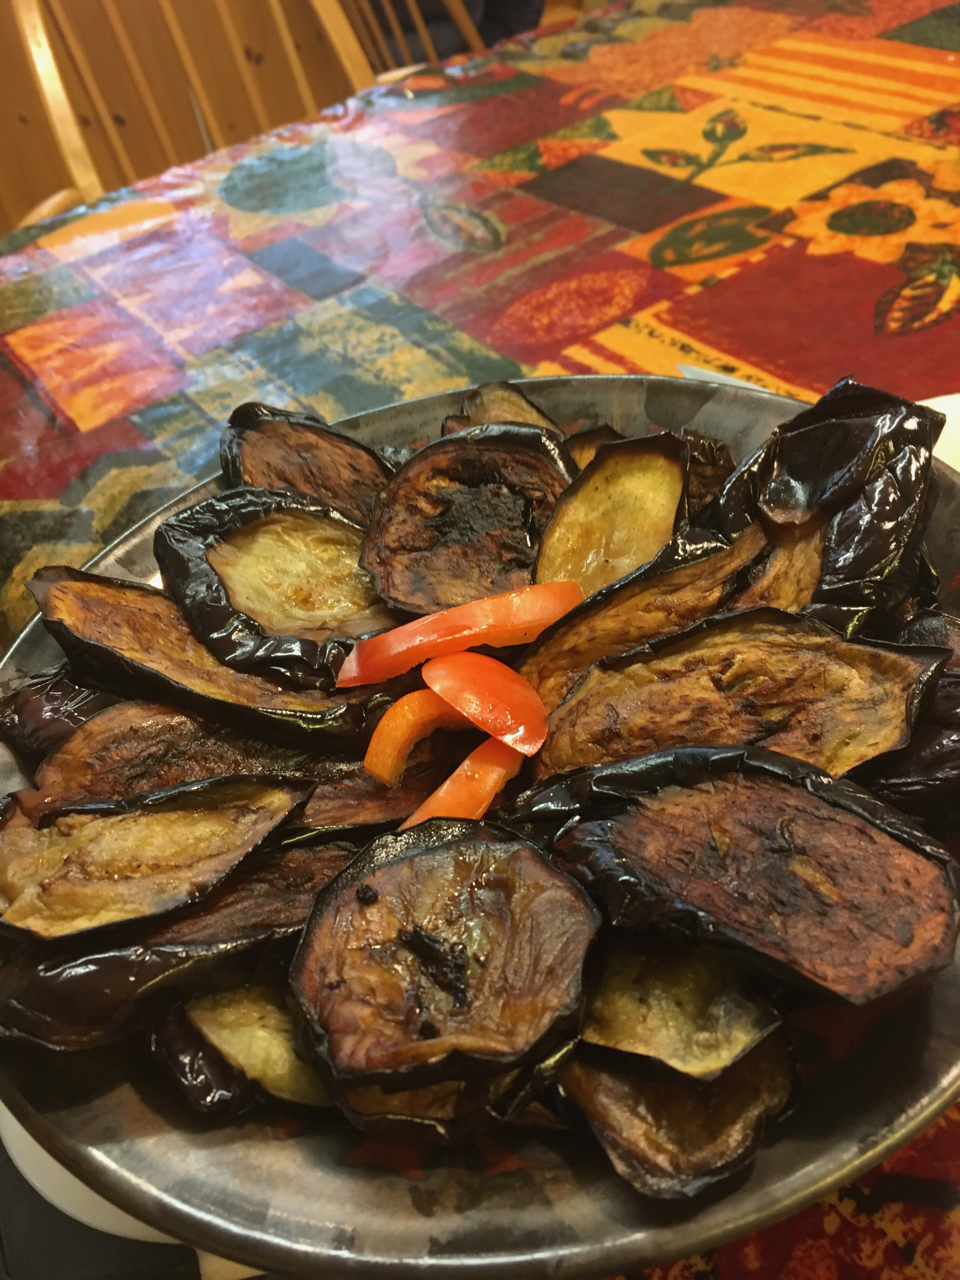 Slices of fried aubergine (babinjan) laid out on a dish.